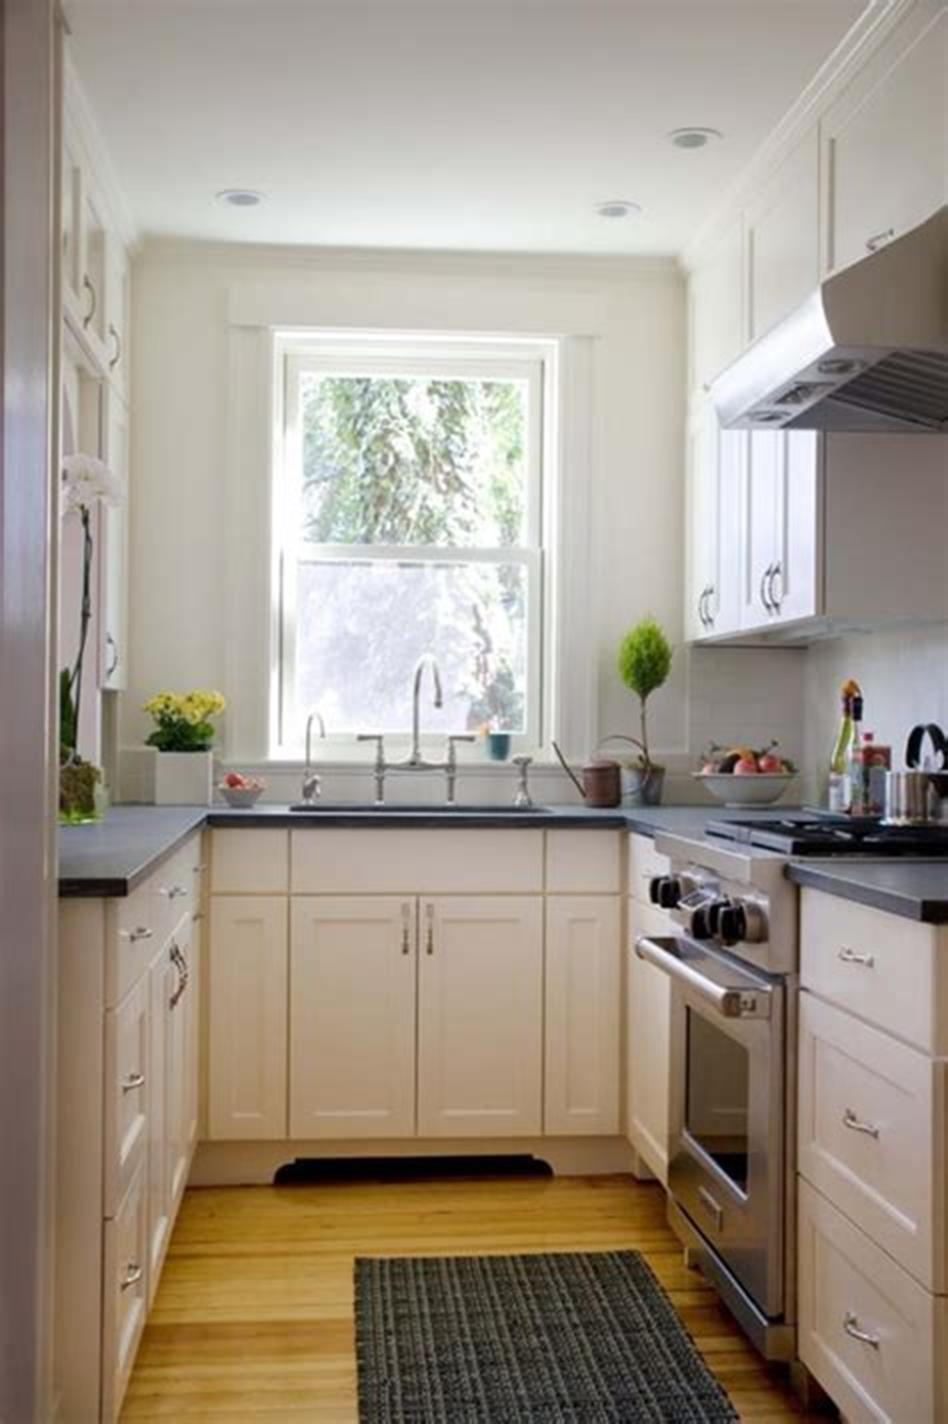 43 Amazing Kitchen Remodeling Ideas for Small Kitchens 2019 28